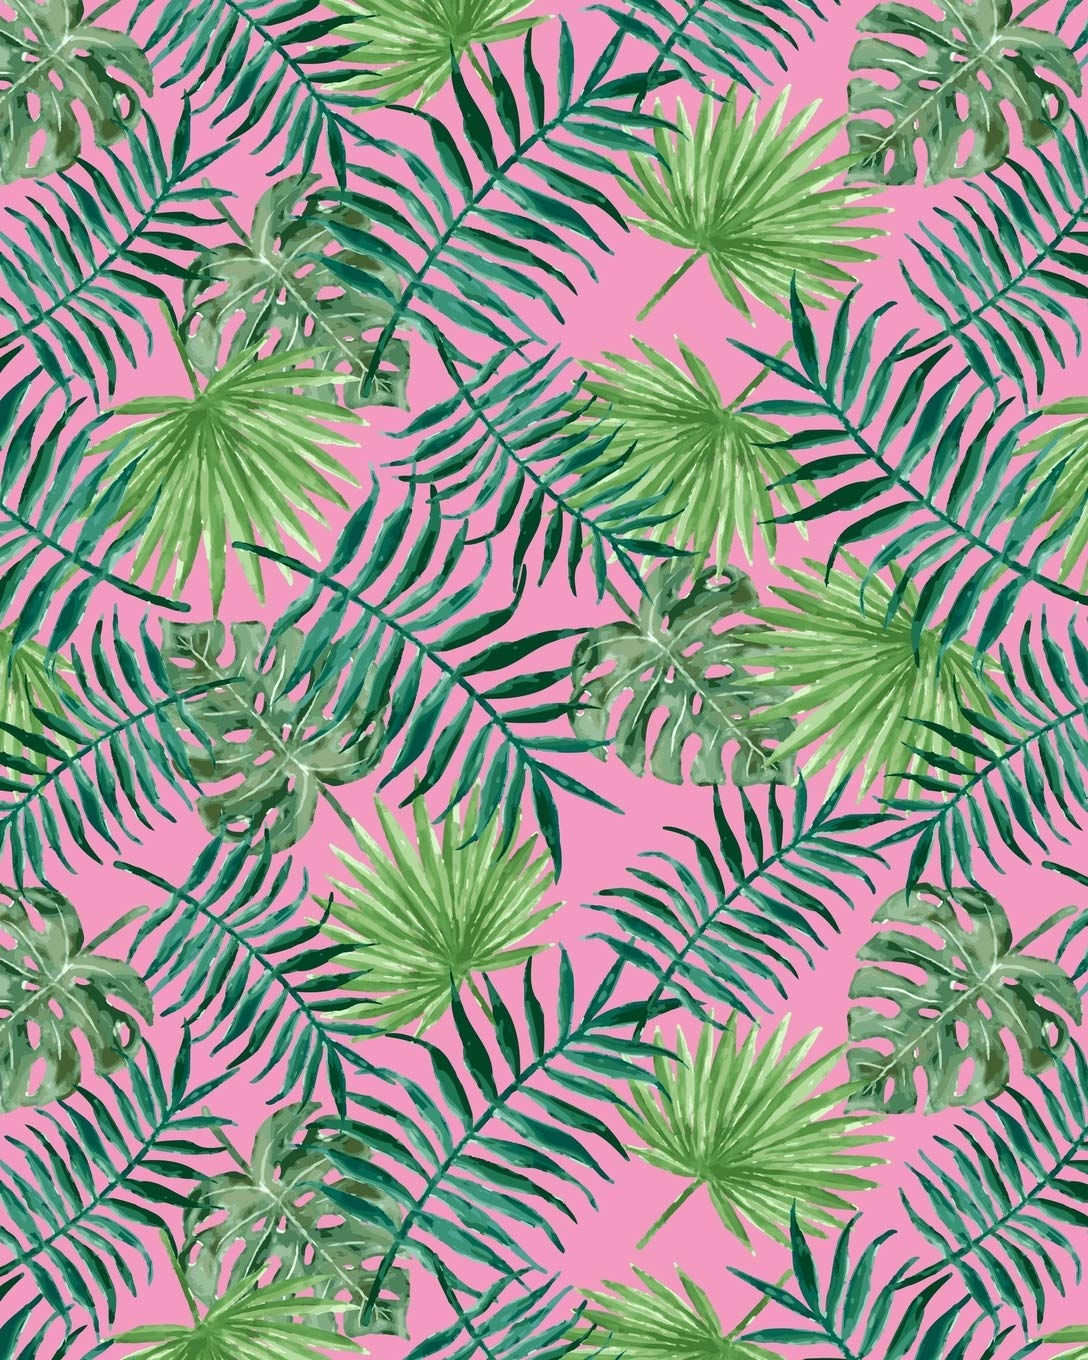 Composition Notebook Tropical Green Leaves Pink Pattern Blank Lined Notebook 120 Pages 8 X10 Notes Happy 9781078074438 Amazon Com Books Tropical palm leaves and orchid flowers. pink pattern blank lined notebook 120